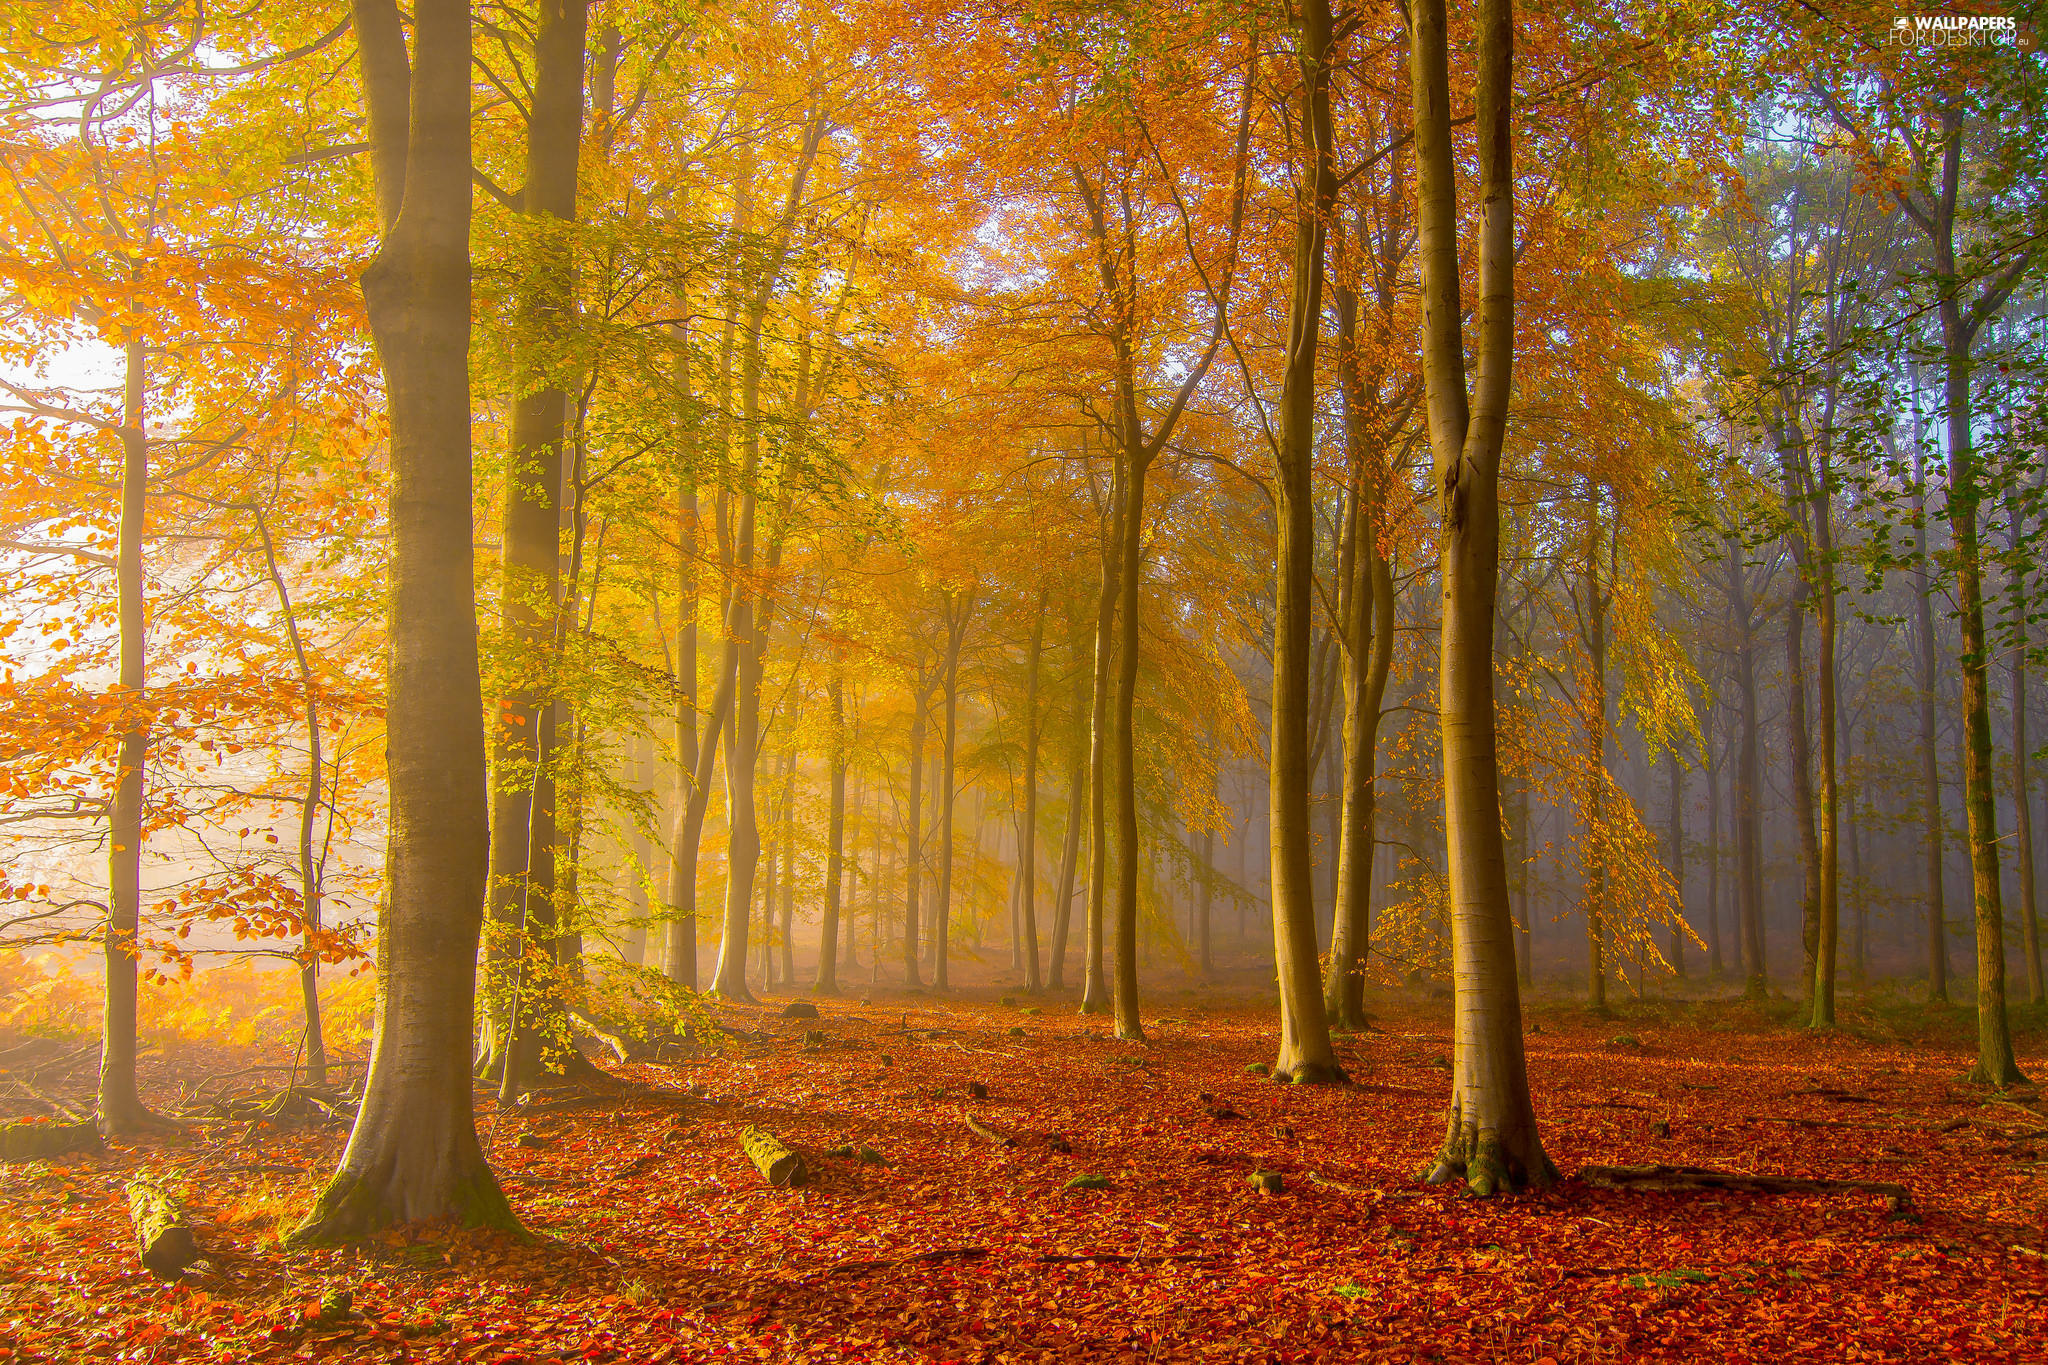 autumn, trees, fallen, viewes, forest, Fog, Leaf